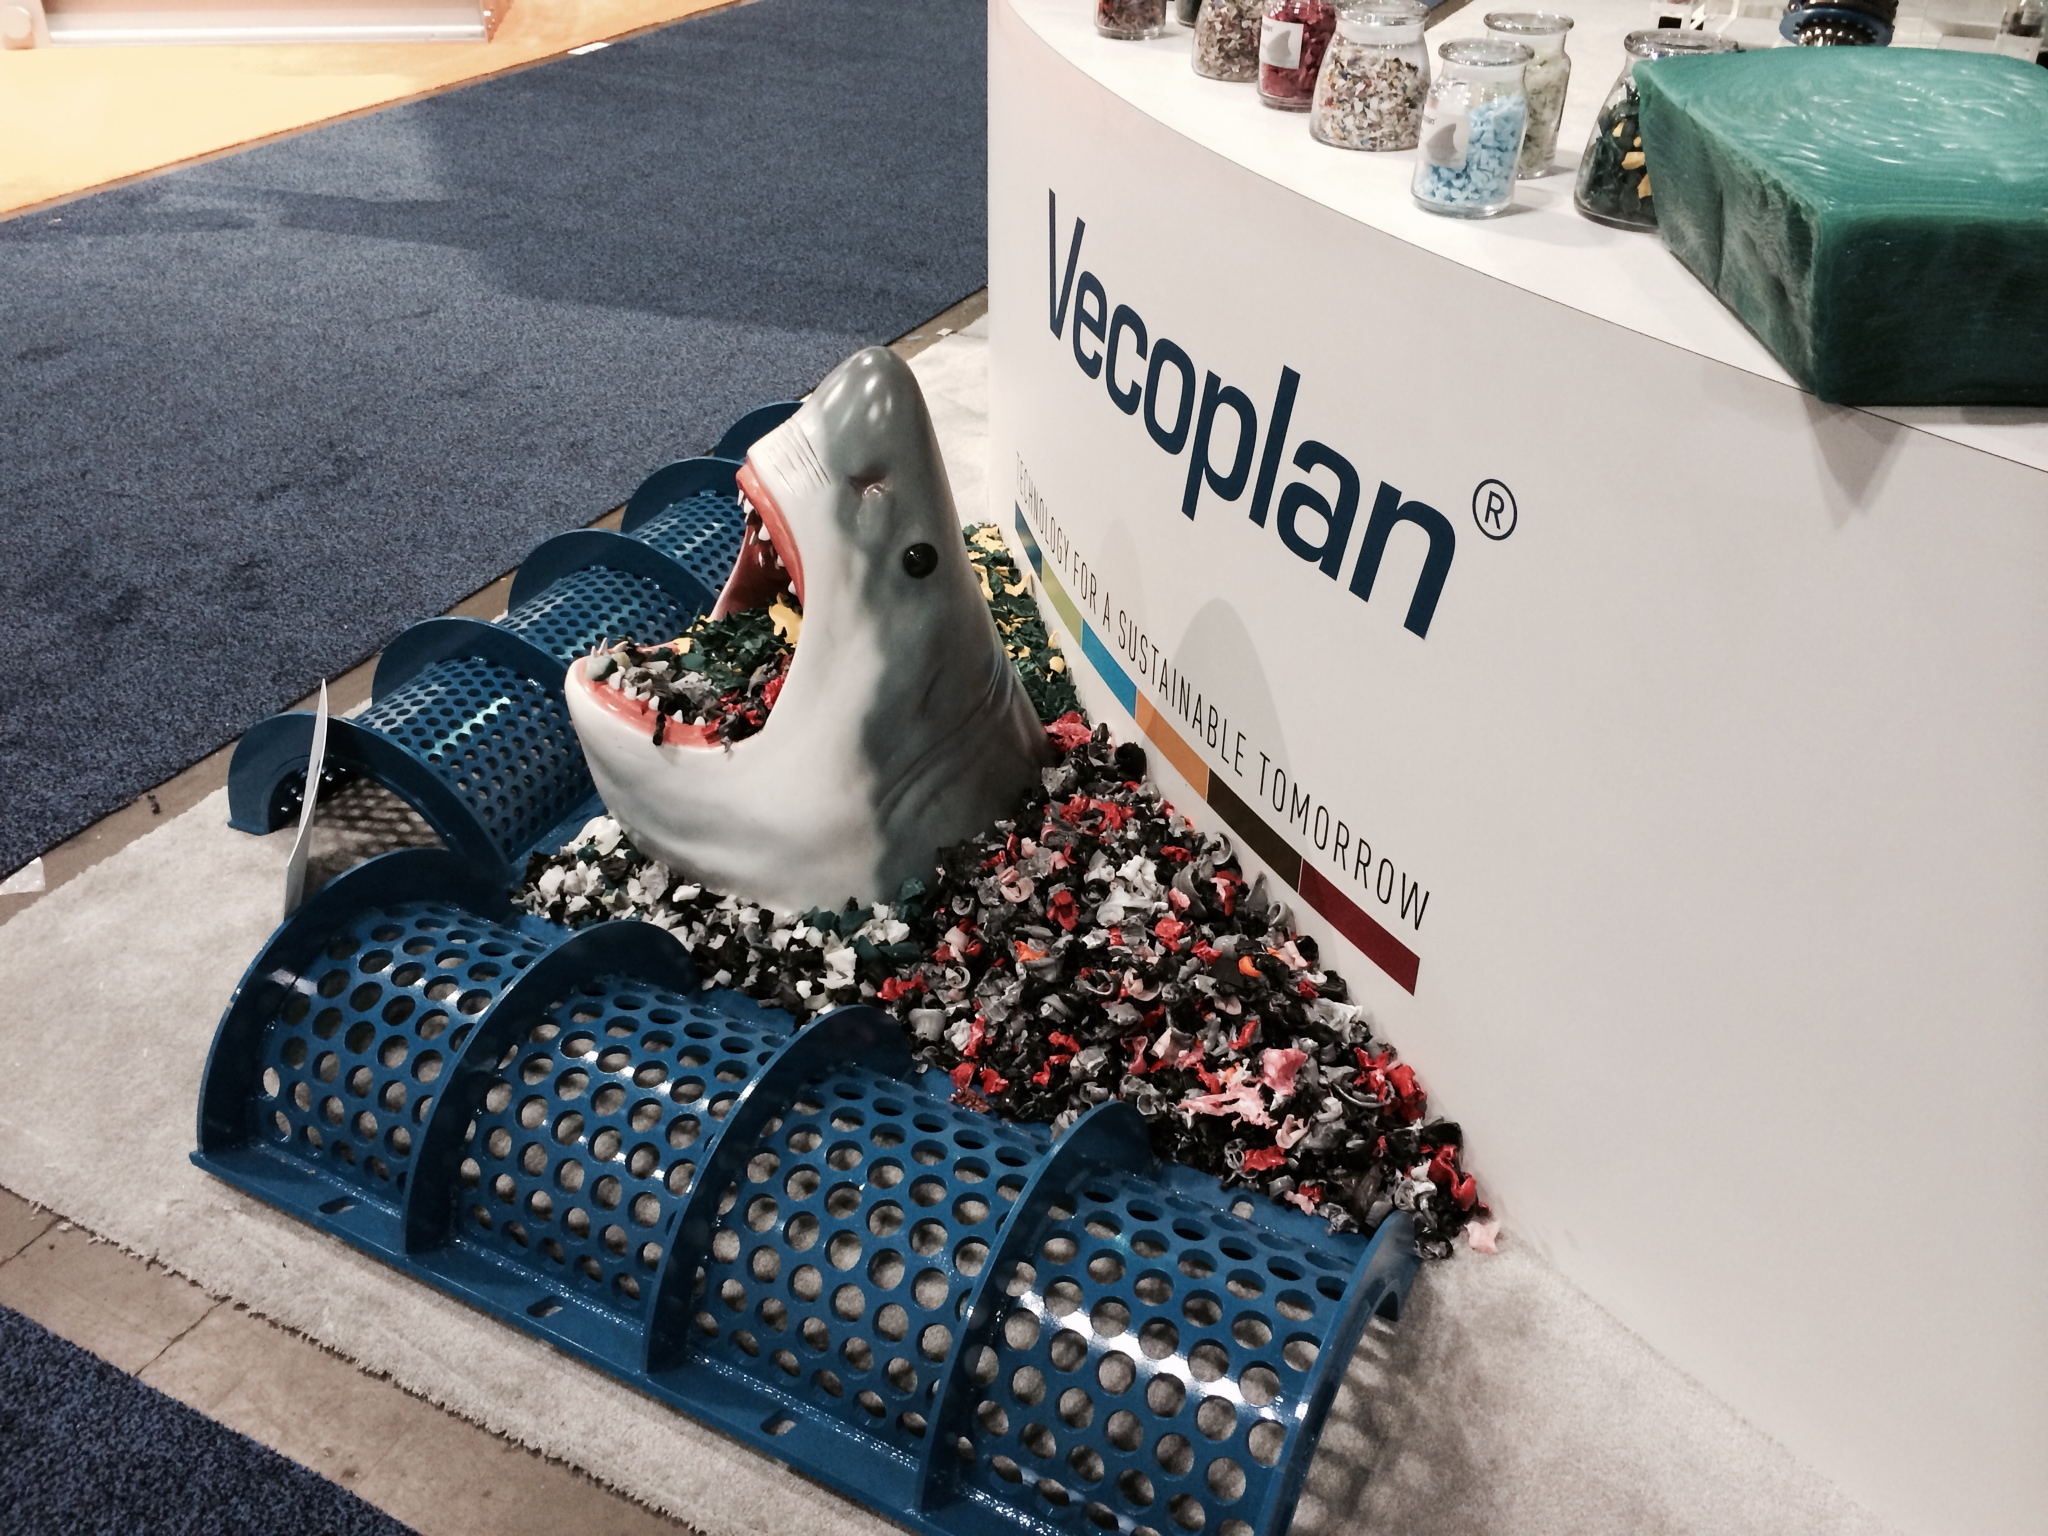 Vecoplan Booth